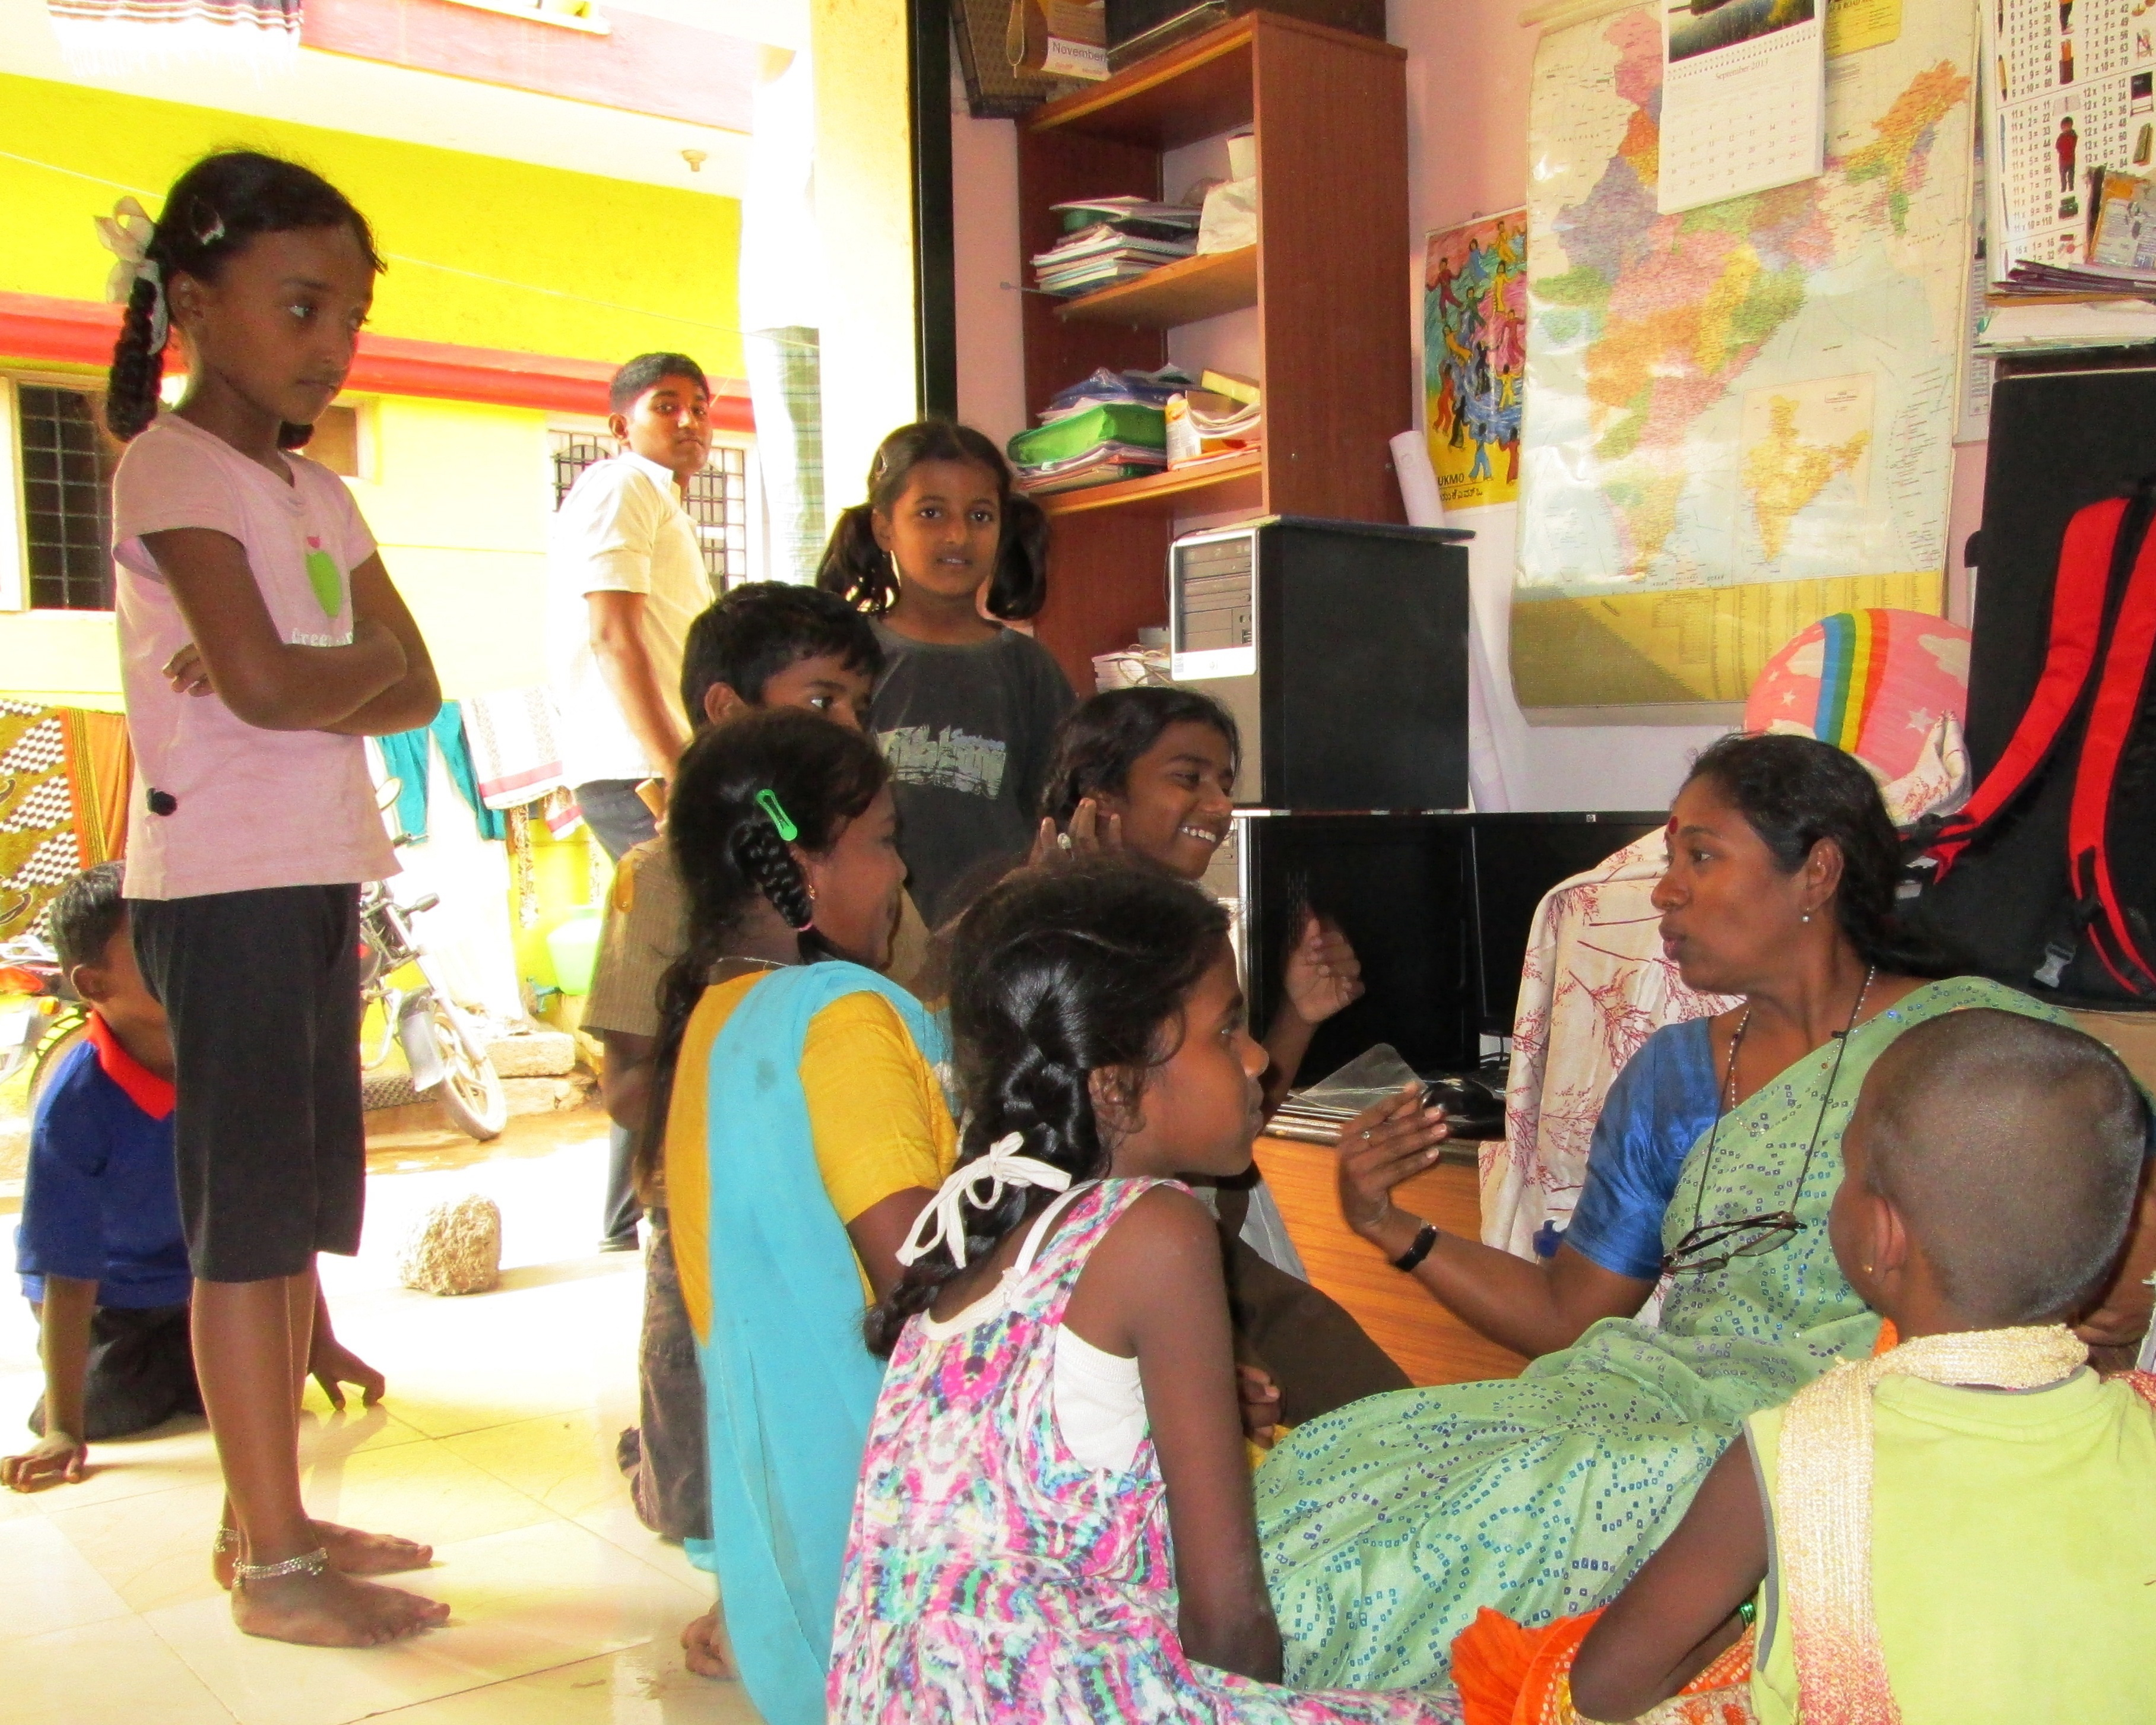 3.These girls come to the GCI office in the slum every day and participate in the Children's Creativity programme